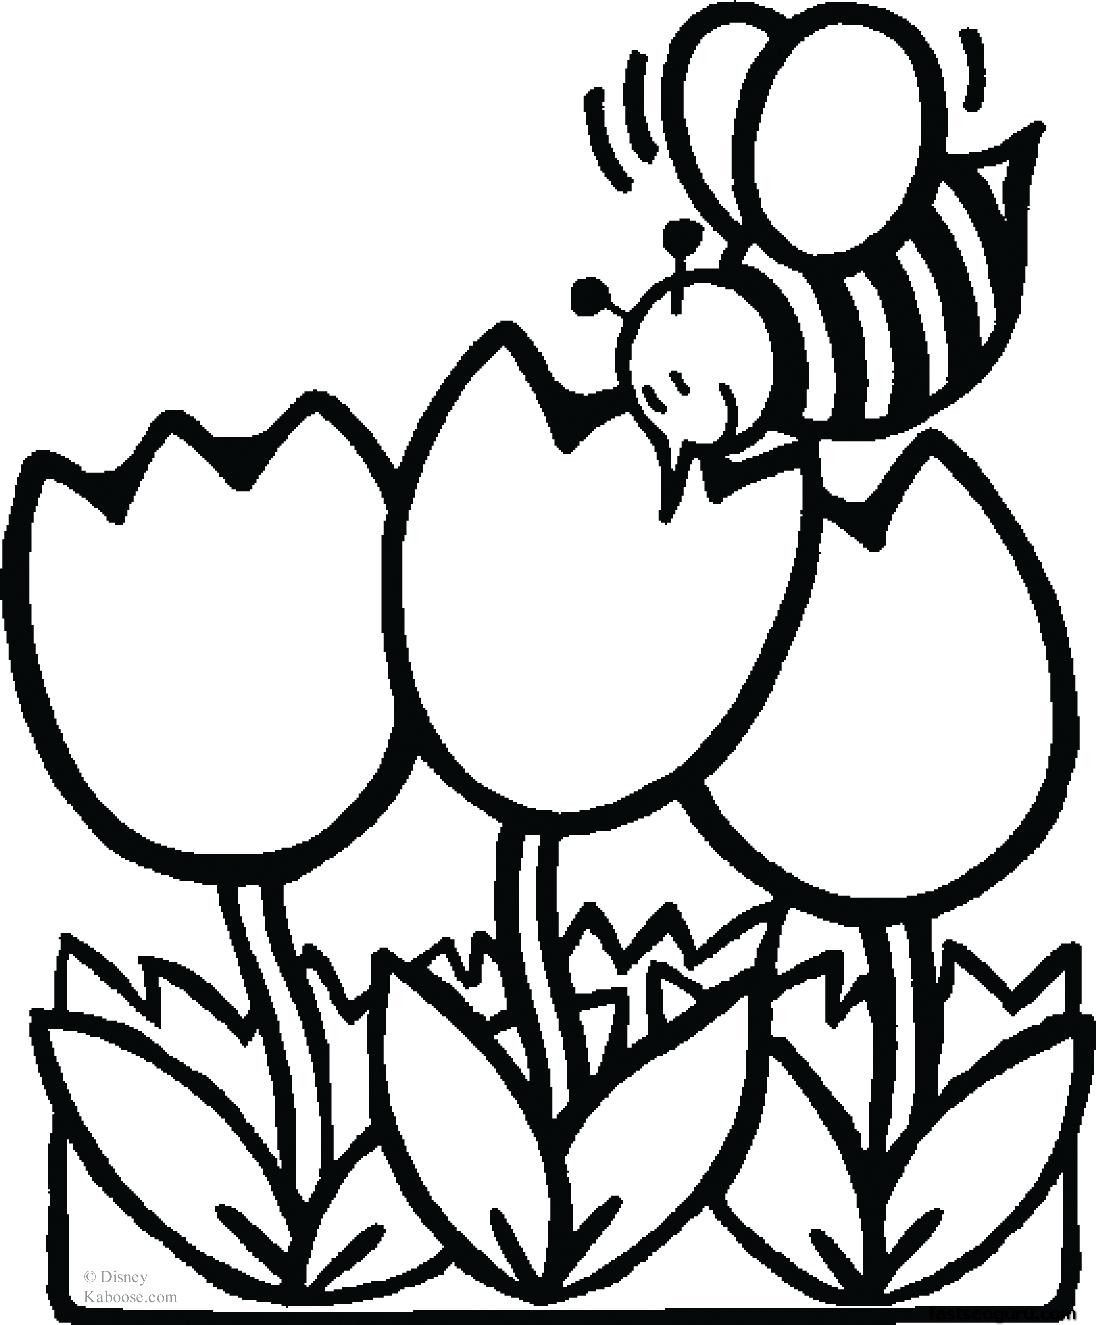 1096x1325 Impressive Blank Flower Coloring Pages Big Download Free Printable